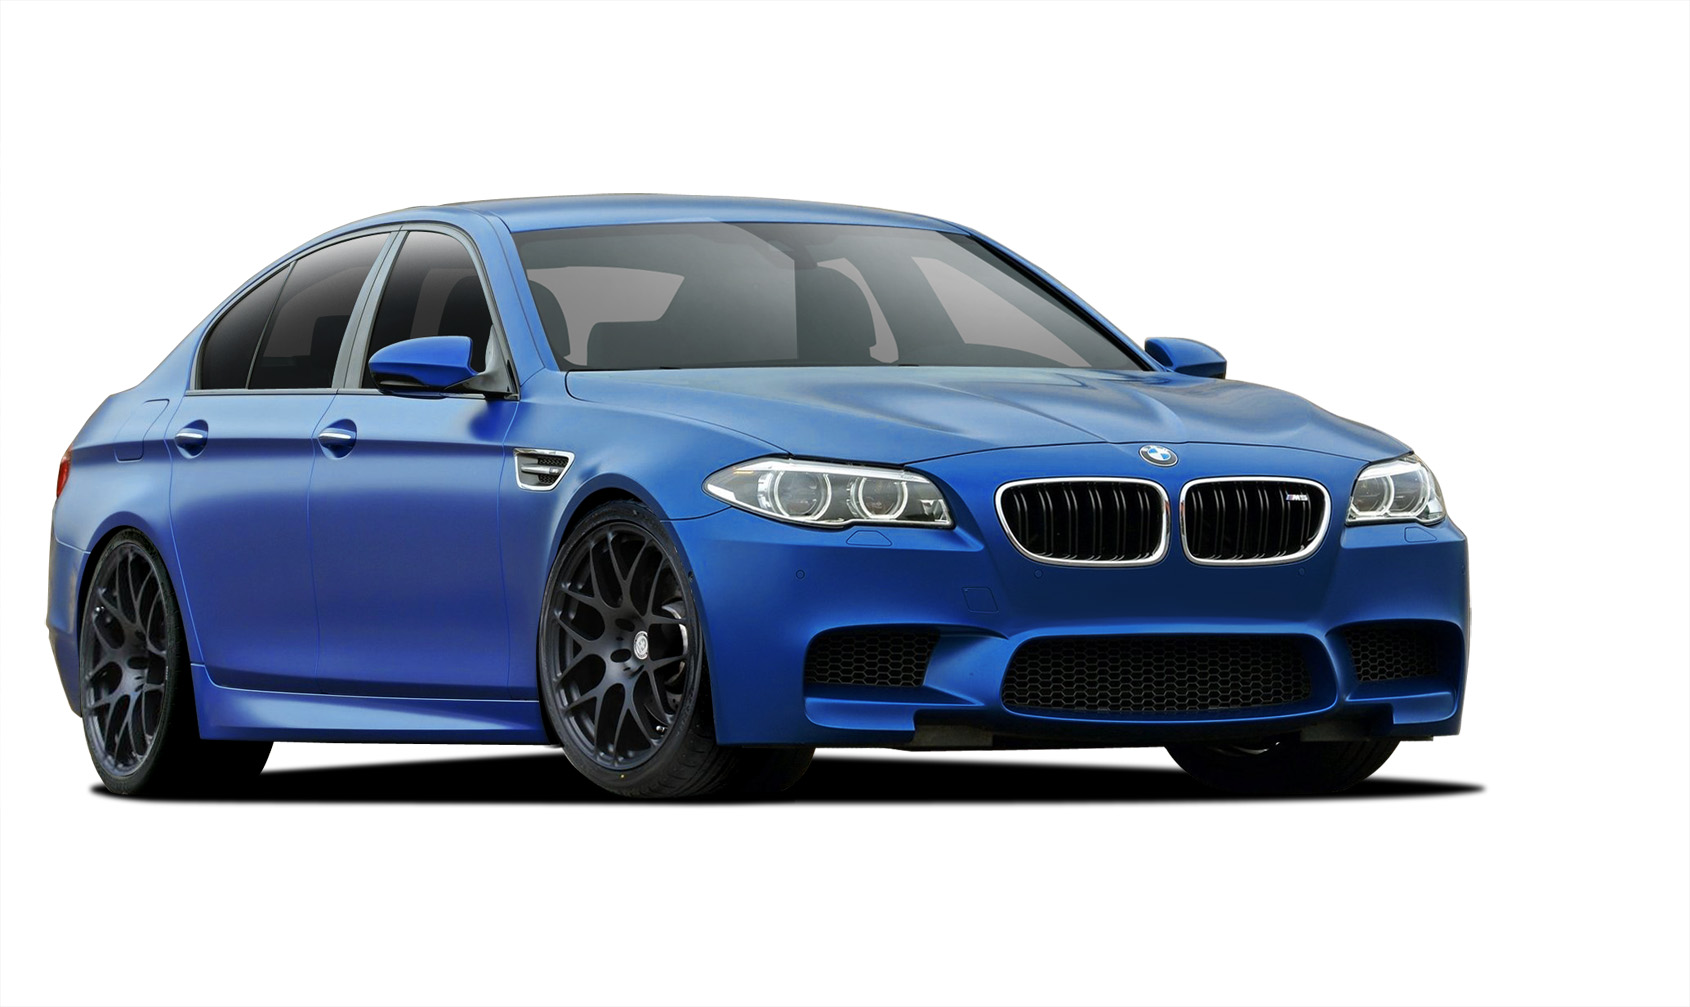 Polypropylene Body Kit Bodykit for 2015 BMW 5 Series 4DR - BMW 5 Series F10 Vaero M5 Look Conversion Kit ( with PDC , with Washer , with Camera ) - 6